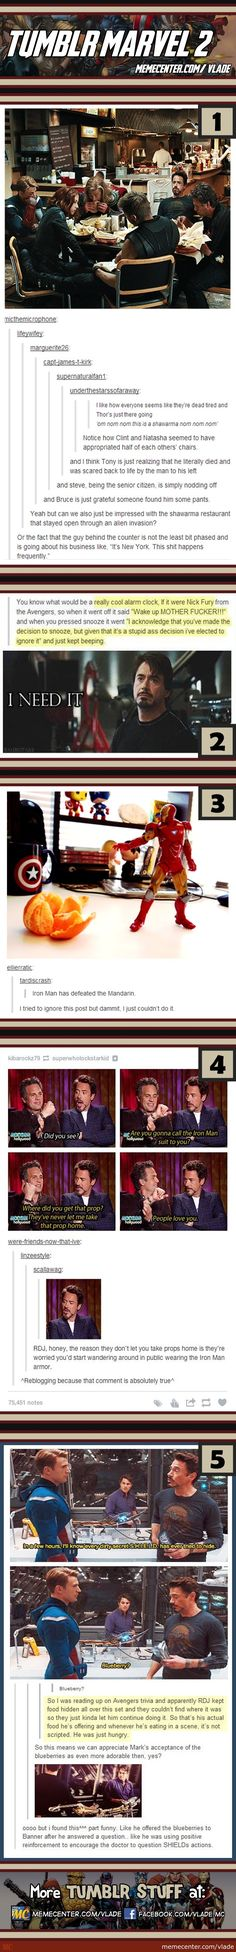 Marvel Tumblr 2